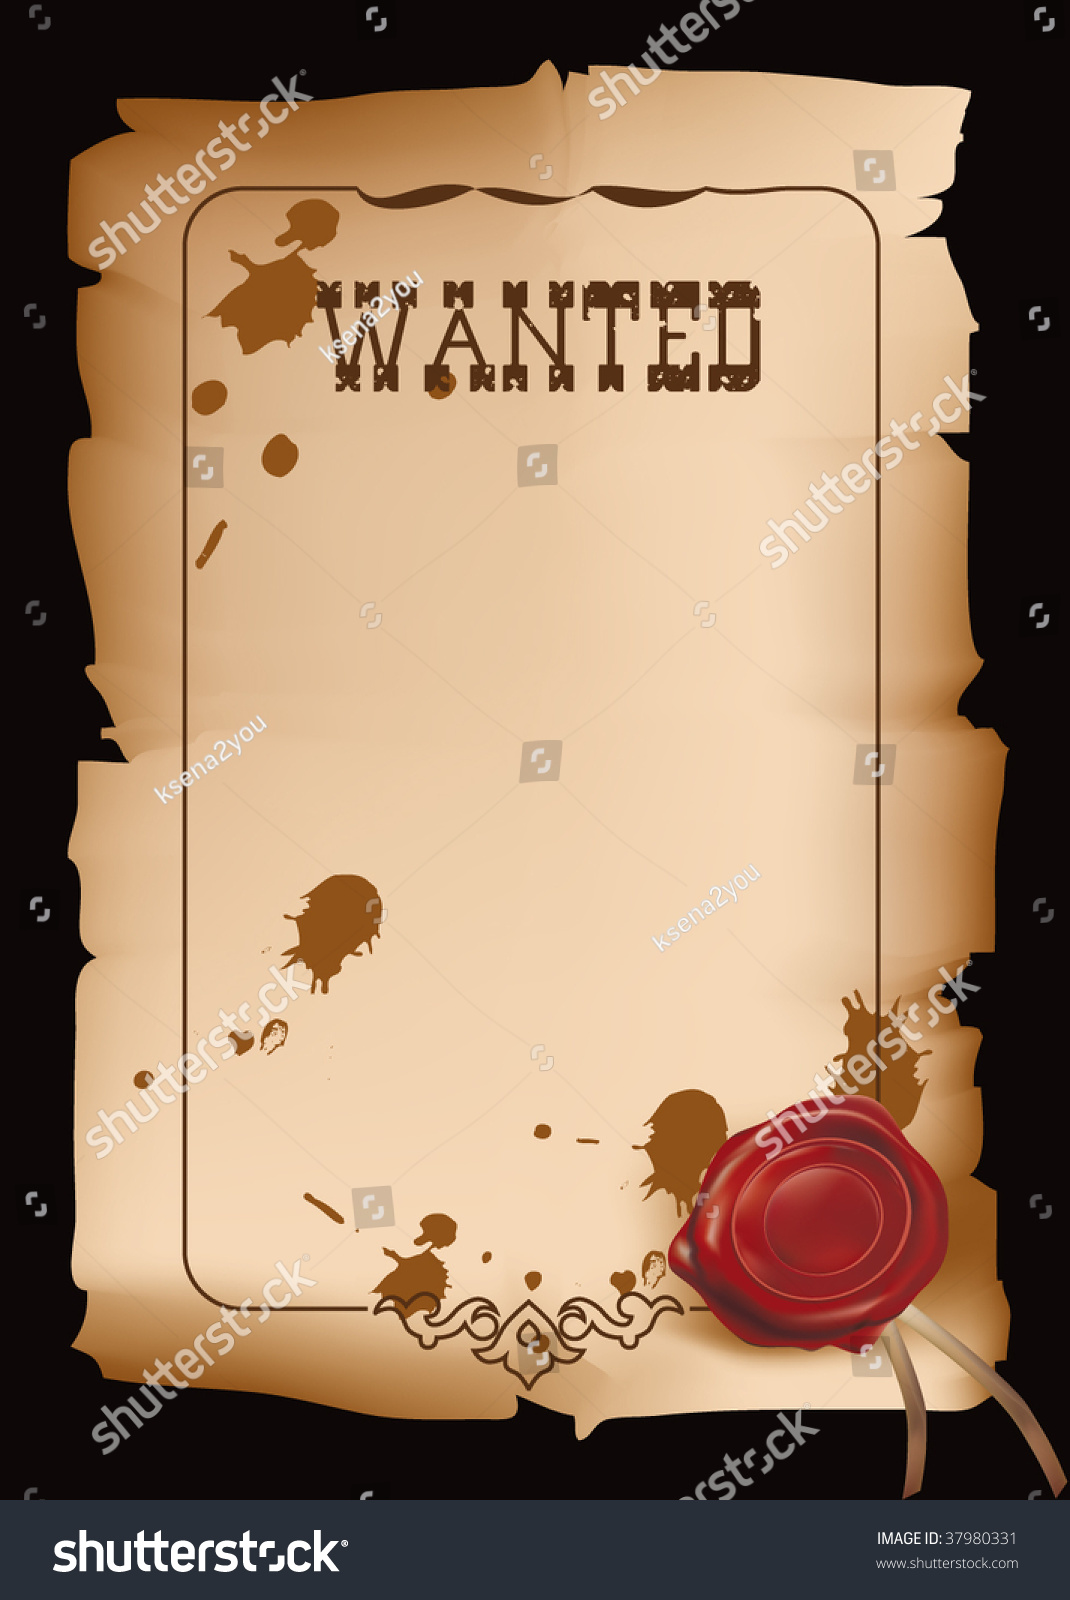 Doc450633 Most Wanted Poster Template 19 FREE Wanted Poster – Wanted Poster Free Template